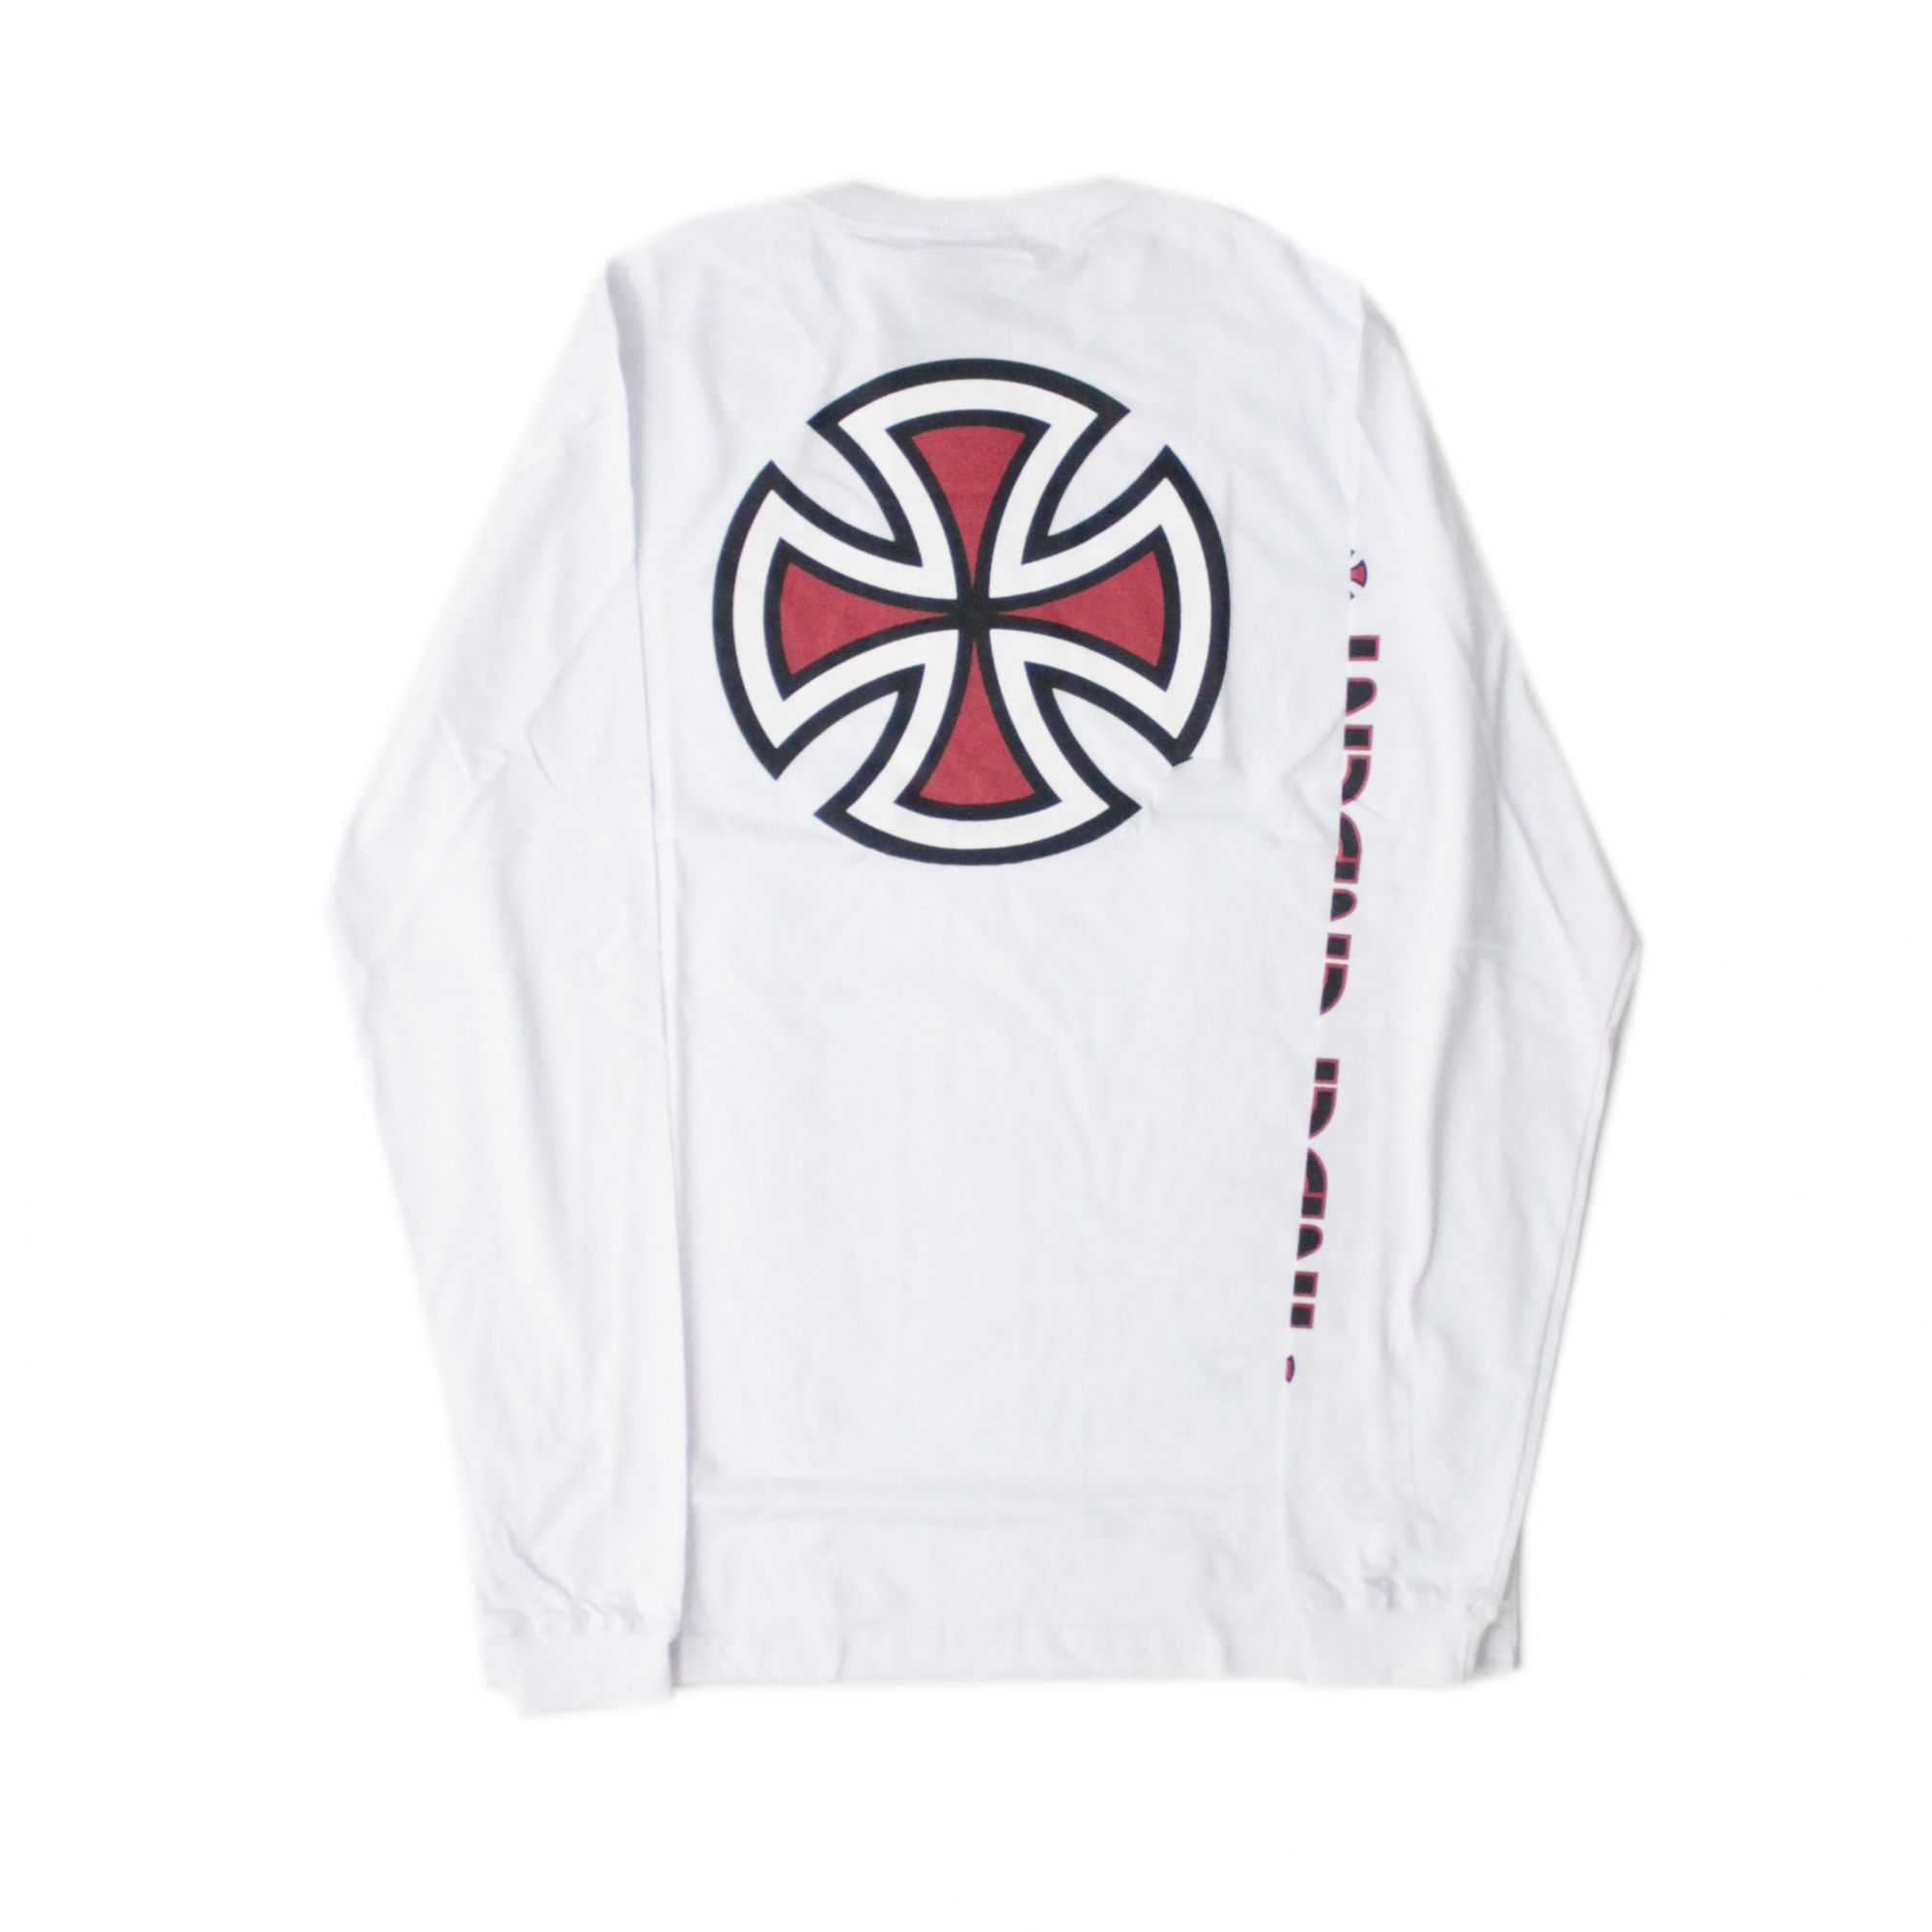 Camiseta Manga Longa Independent Bar Cross - Branco